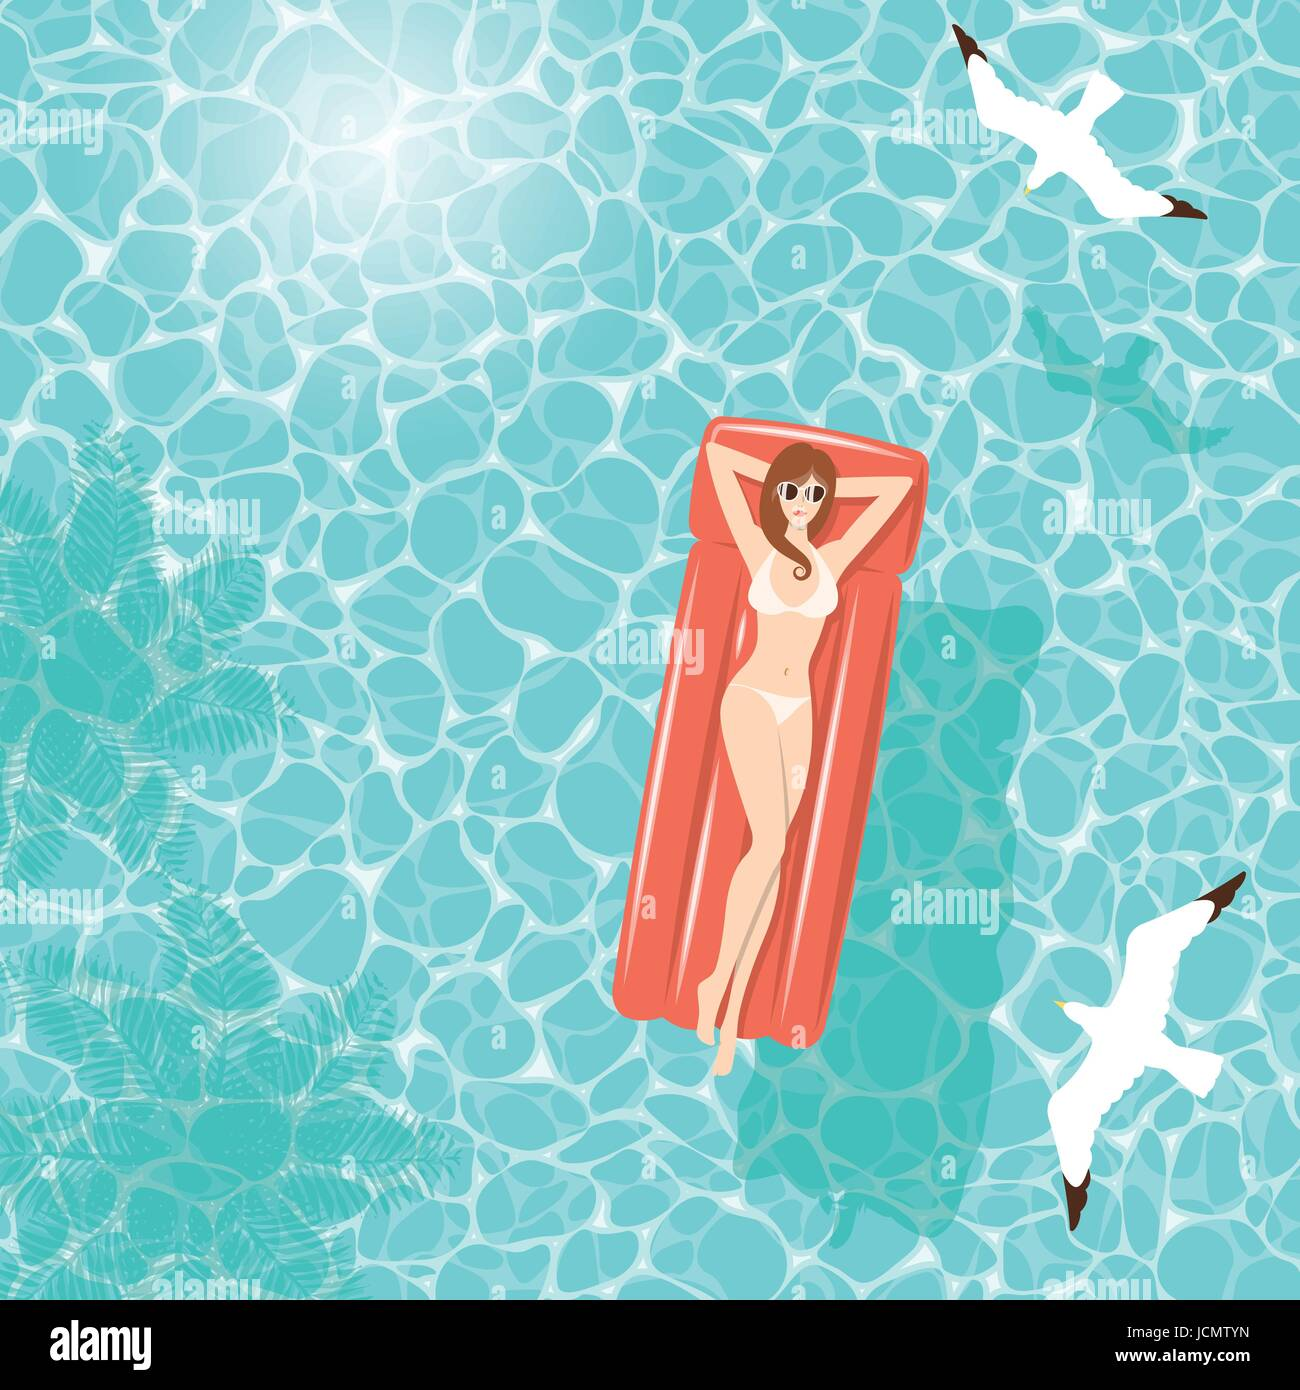 Woman in white bikini relaxing on red air mattress floating in clear turquoise sea water in summer, with shadow - Stock Vector